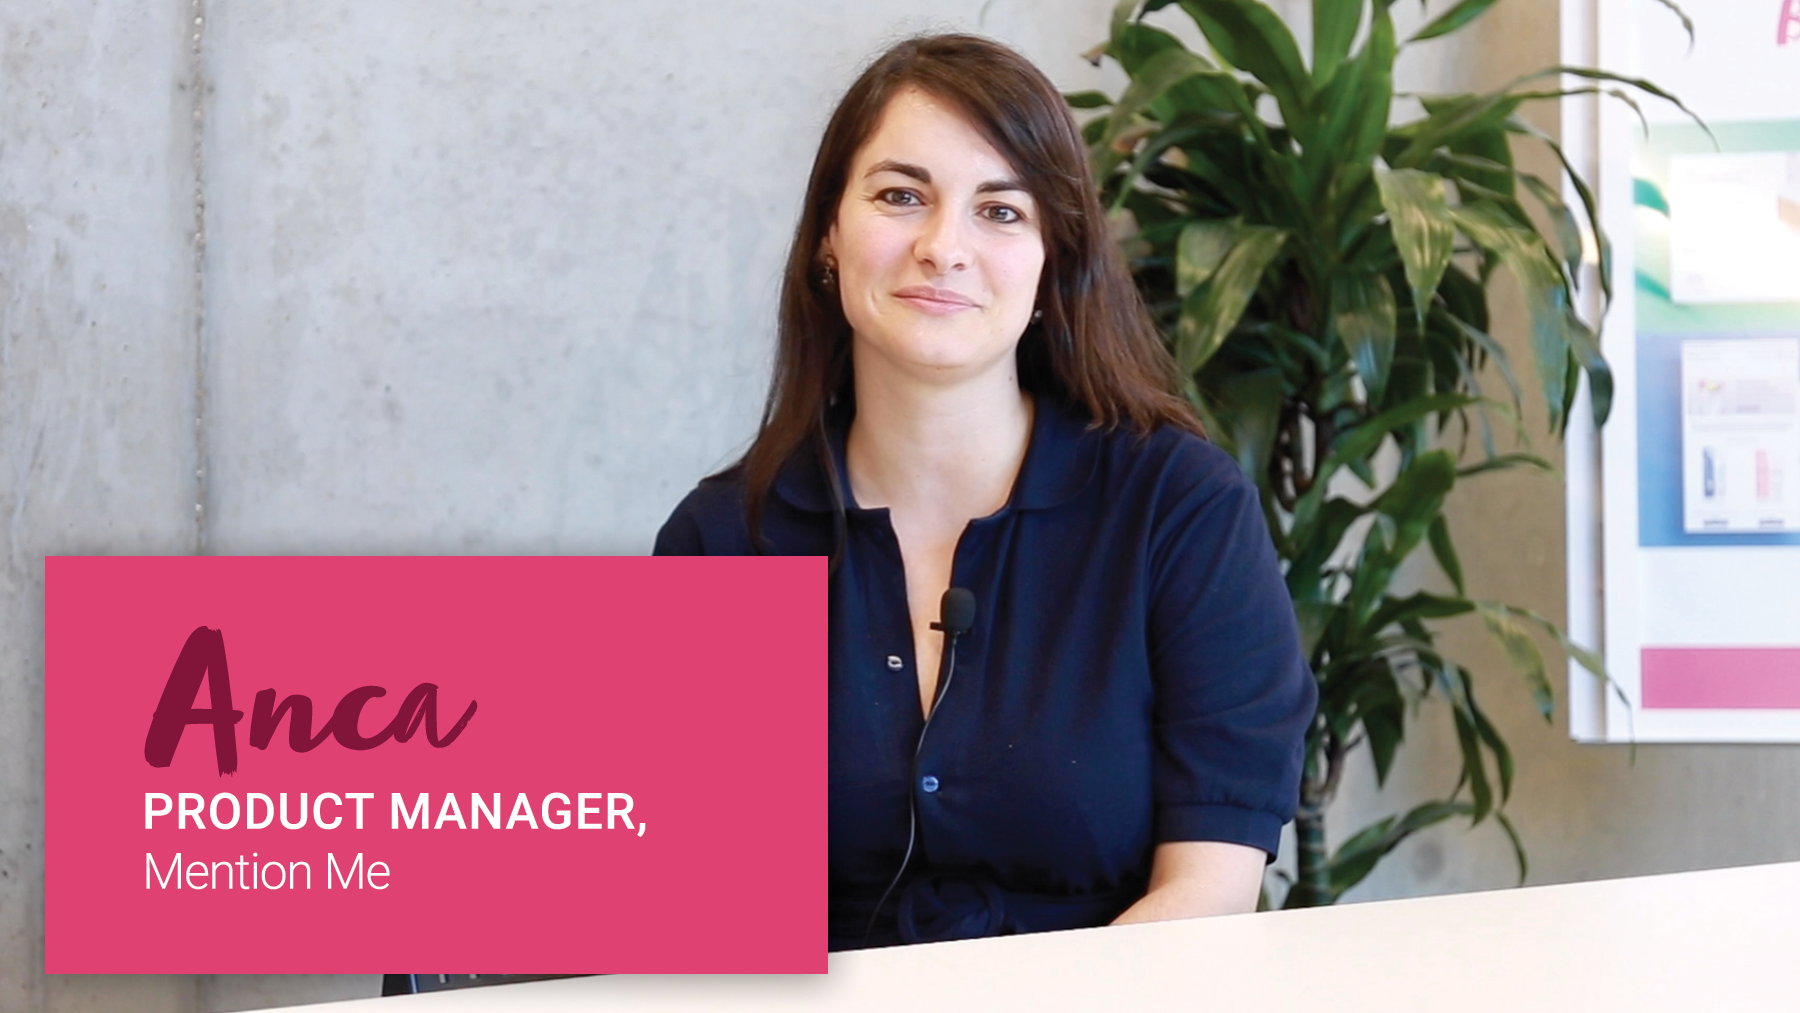 Anca, Product manager